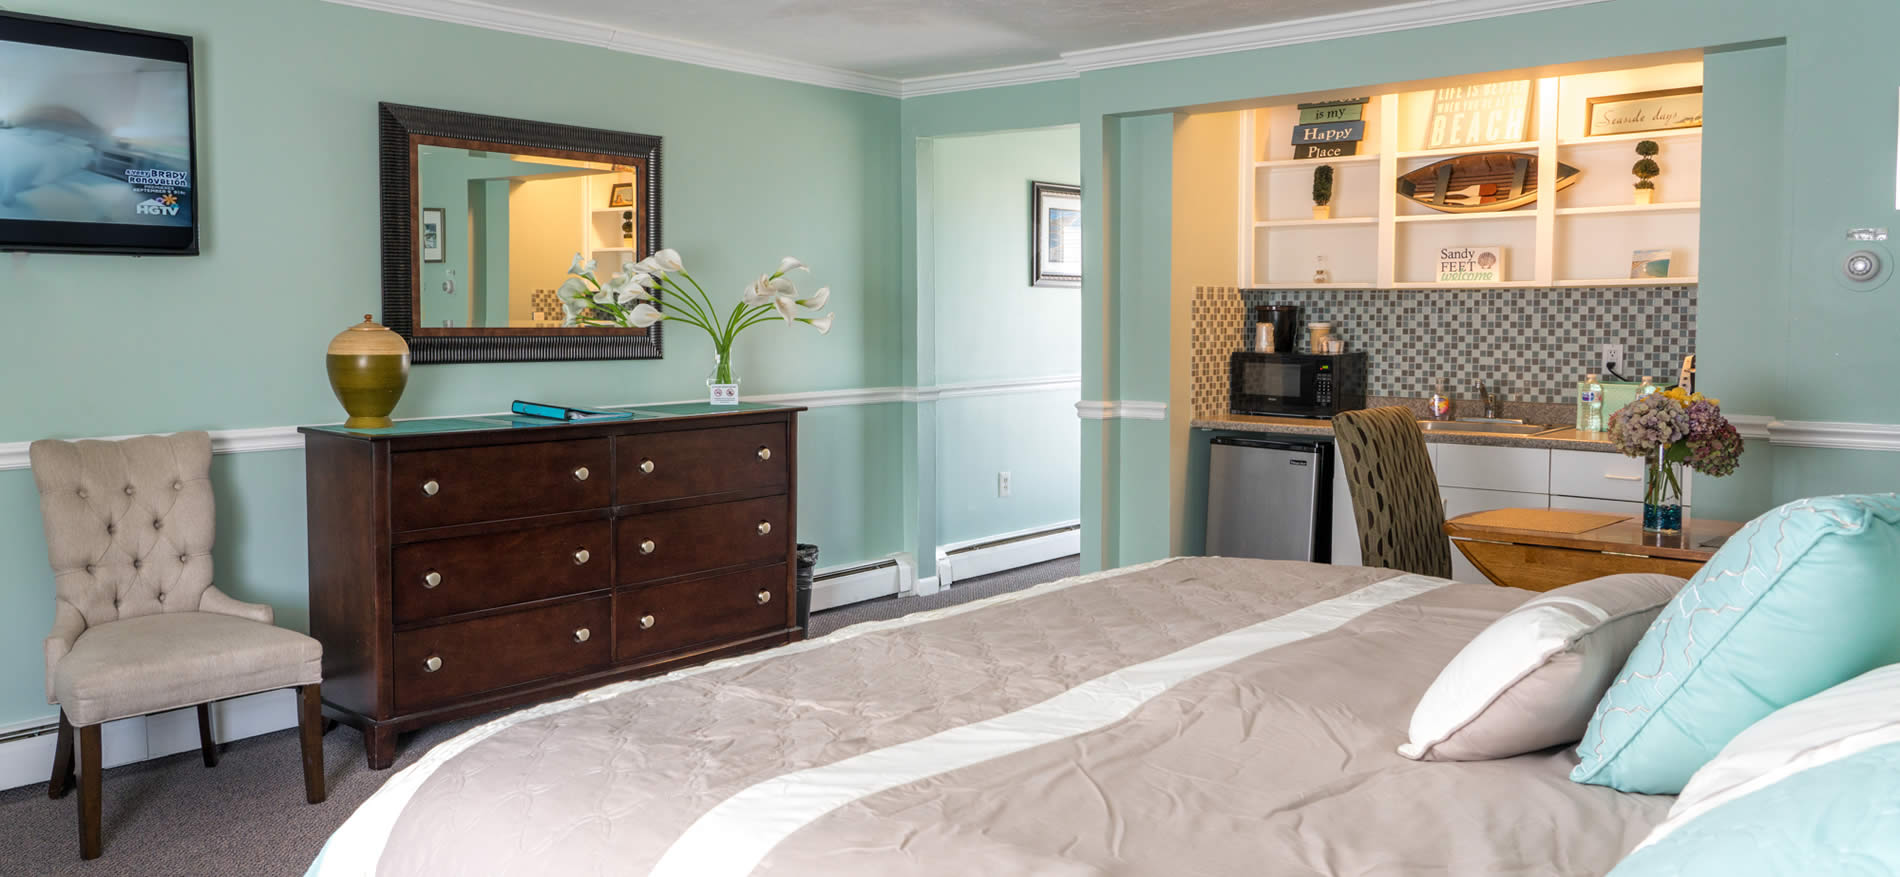 nantasket beach hotel guest room with bed, table, kitchenette